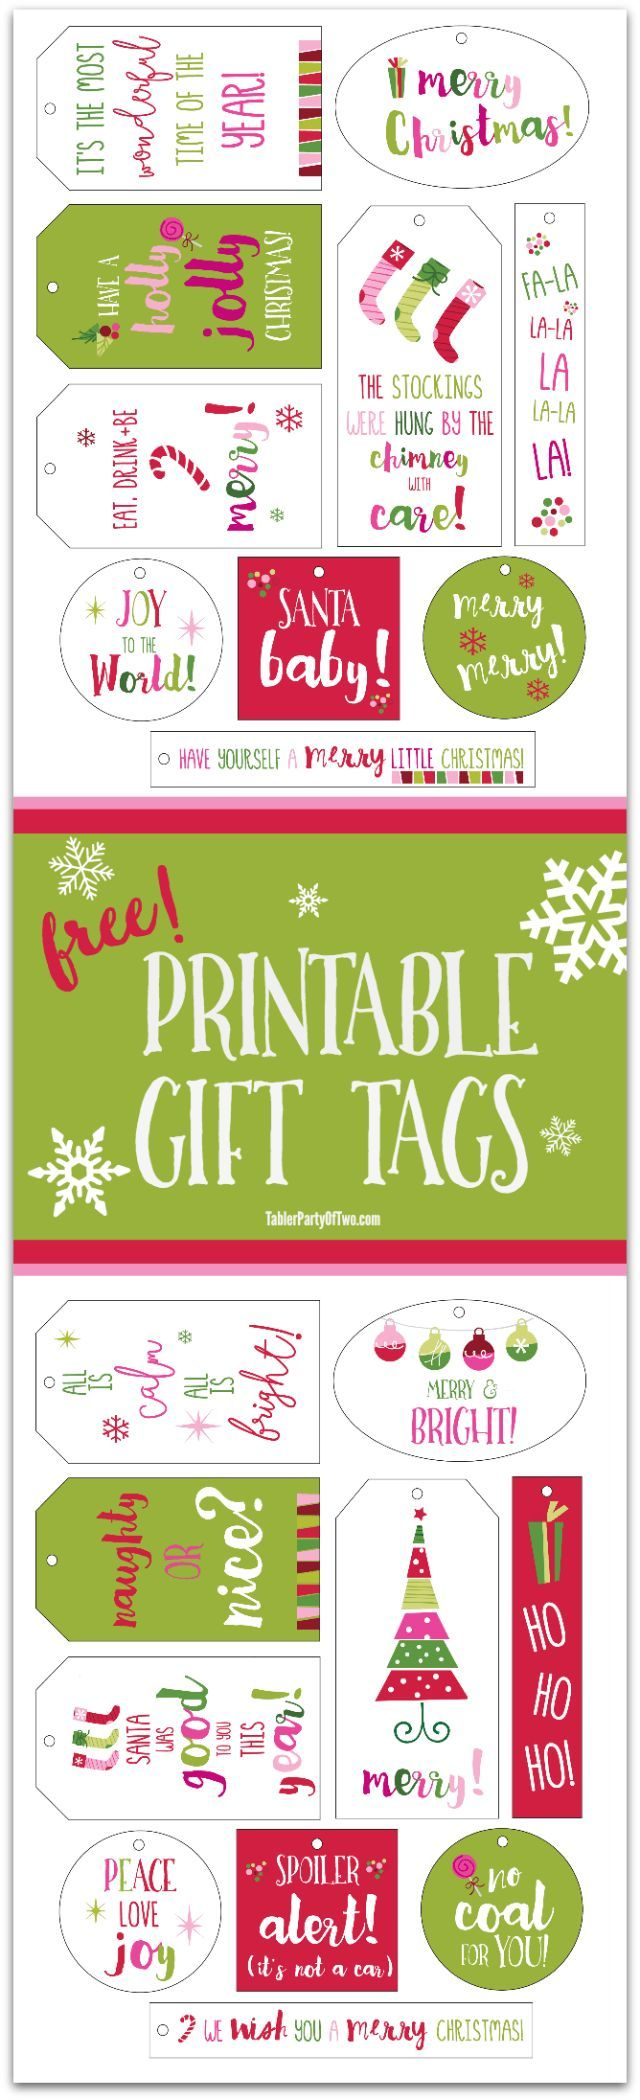 Free printable gift cards collection 2 free christmas printable gift tags for you simple print them on white card stock negle Image collections